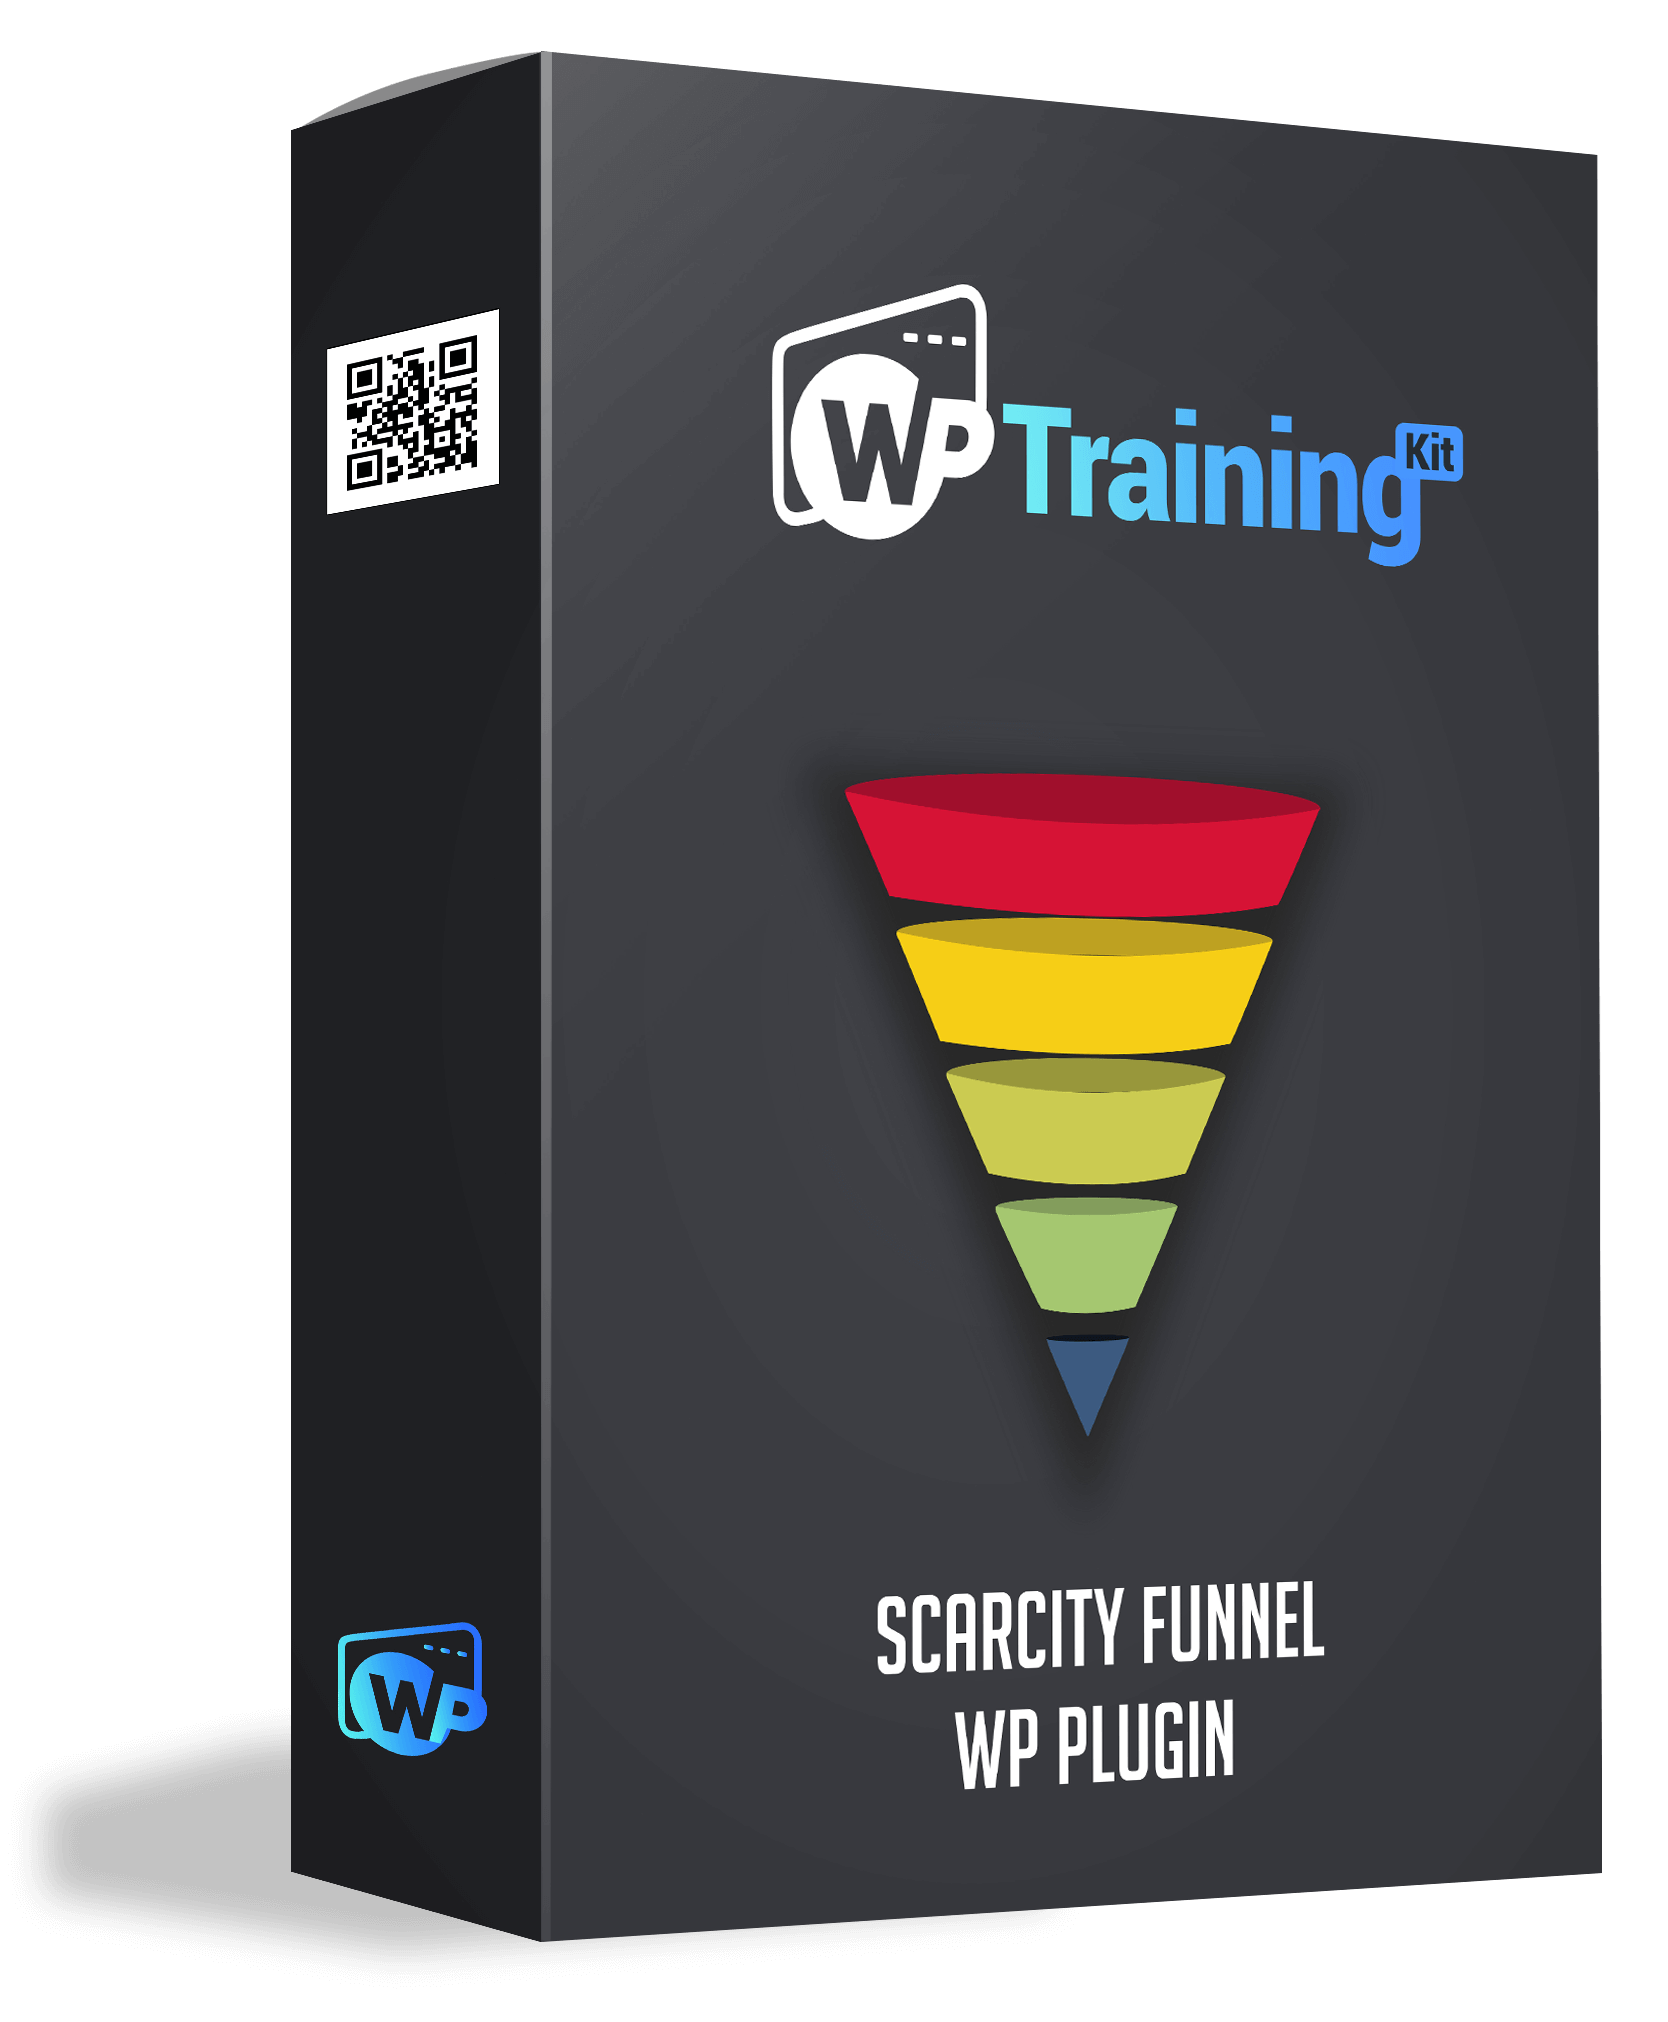 Bonus 9. Scarcity Funnel WP Plugin Box Design